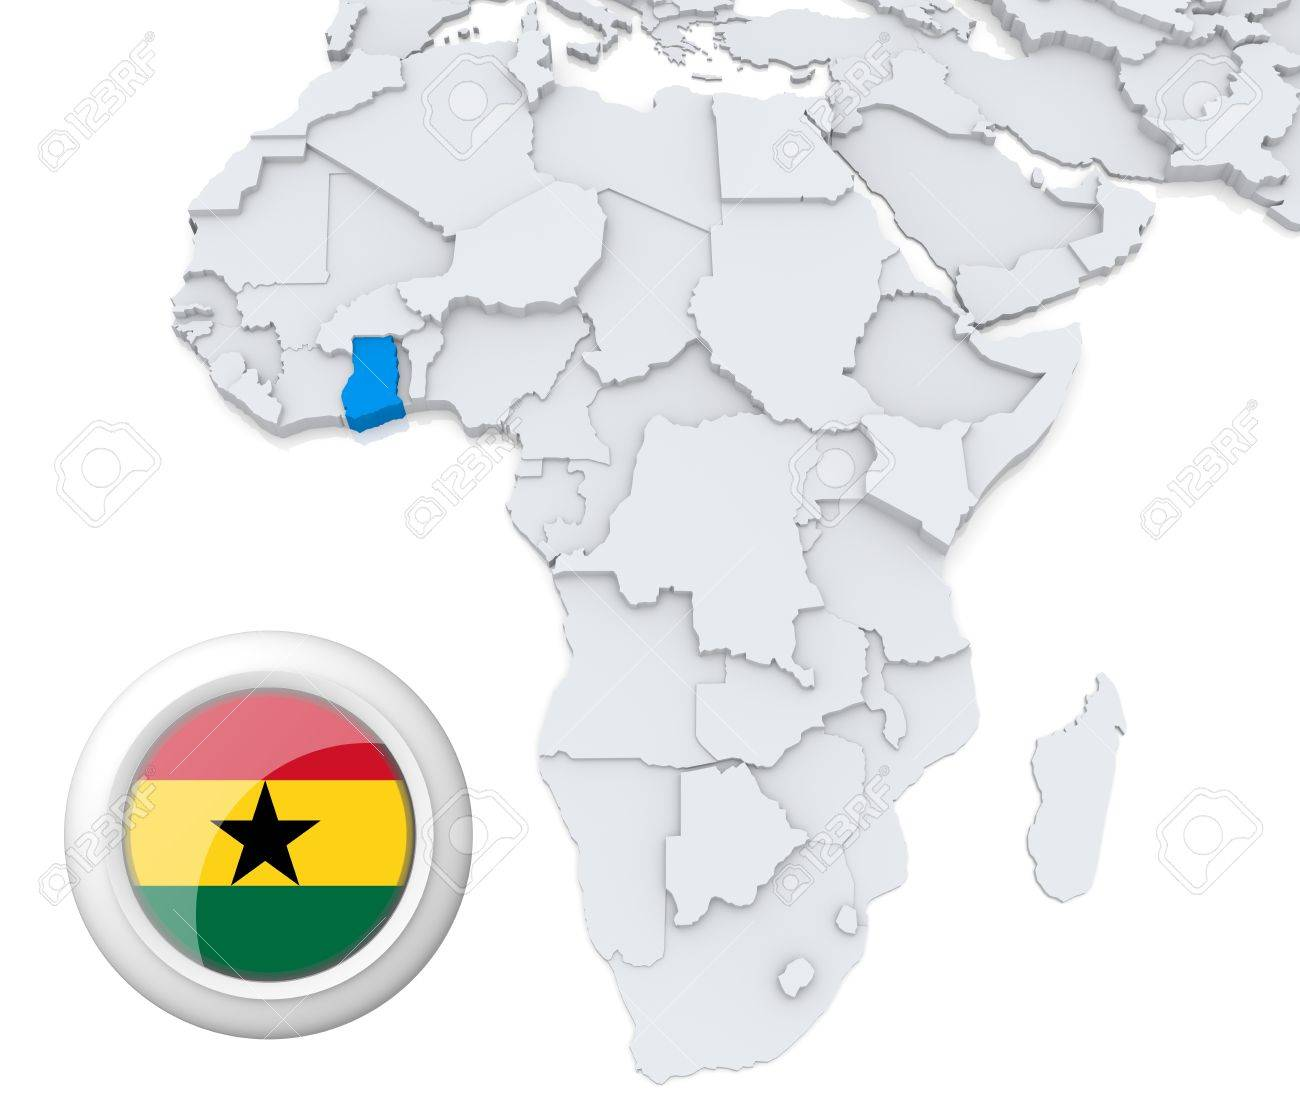 Ghana Karte Afrika.3d Modeled Map Of Africa With Highlighted State Of Ghana With